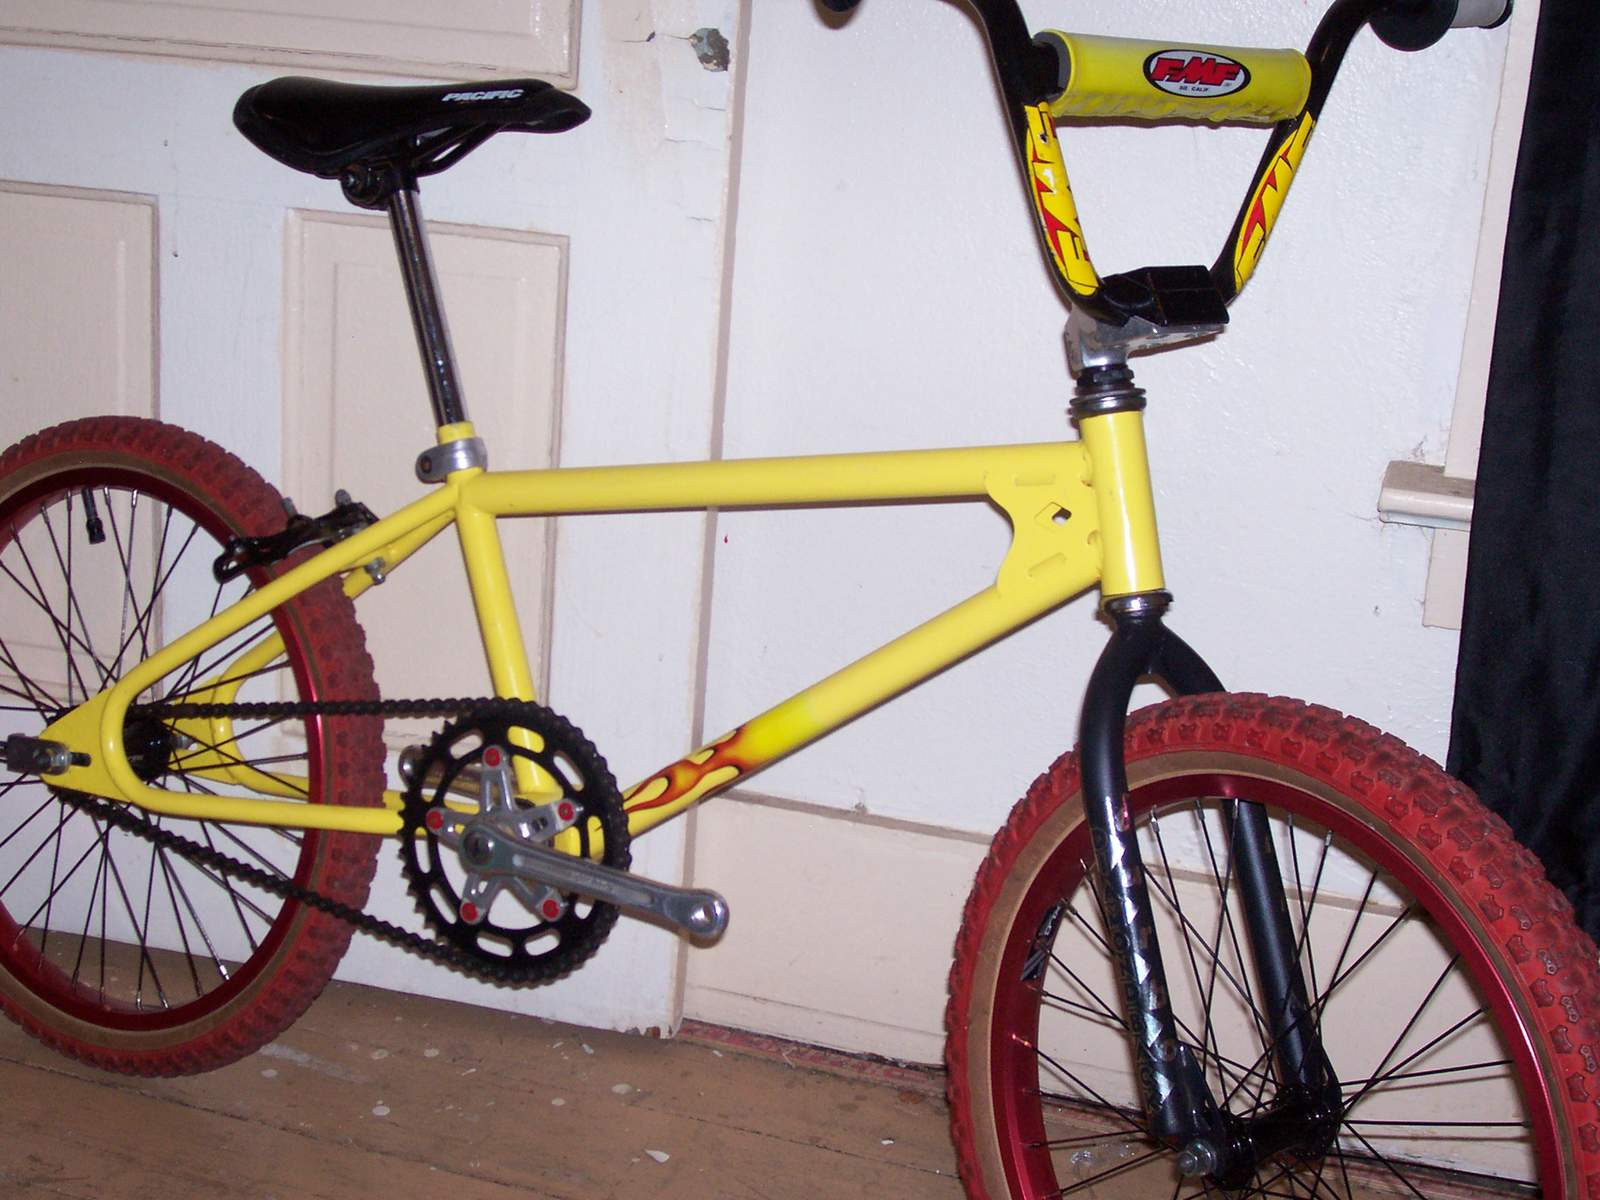 http://uploads.bmxmuseum.com/user-images/61851/100_70335844bef503.jpg